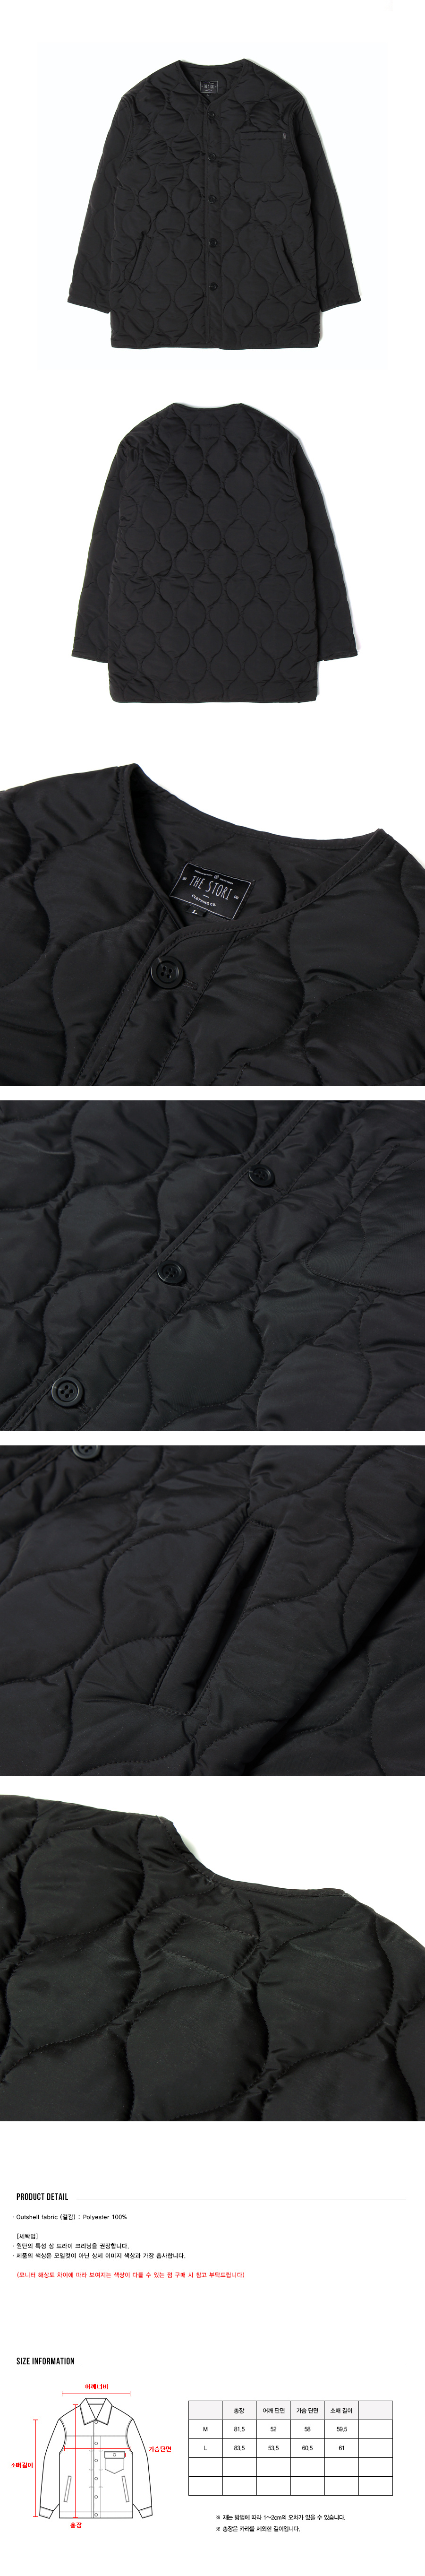 더스토리(THESTORI) 18FW Quilting Long Jacket (Black)